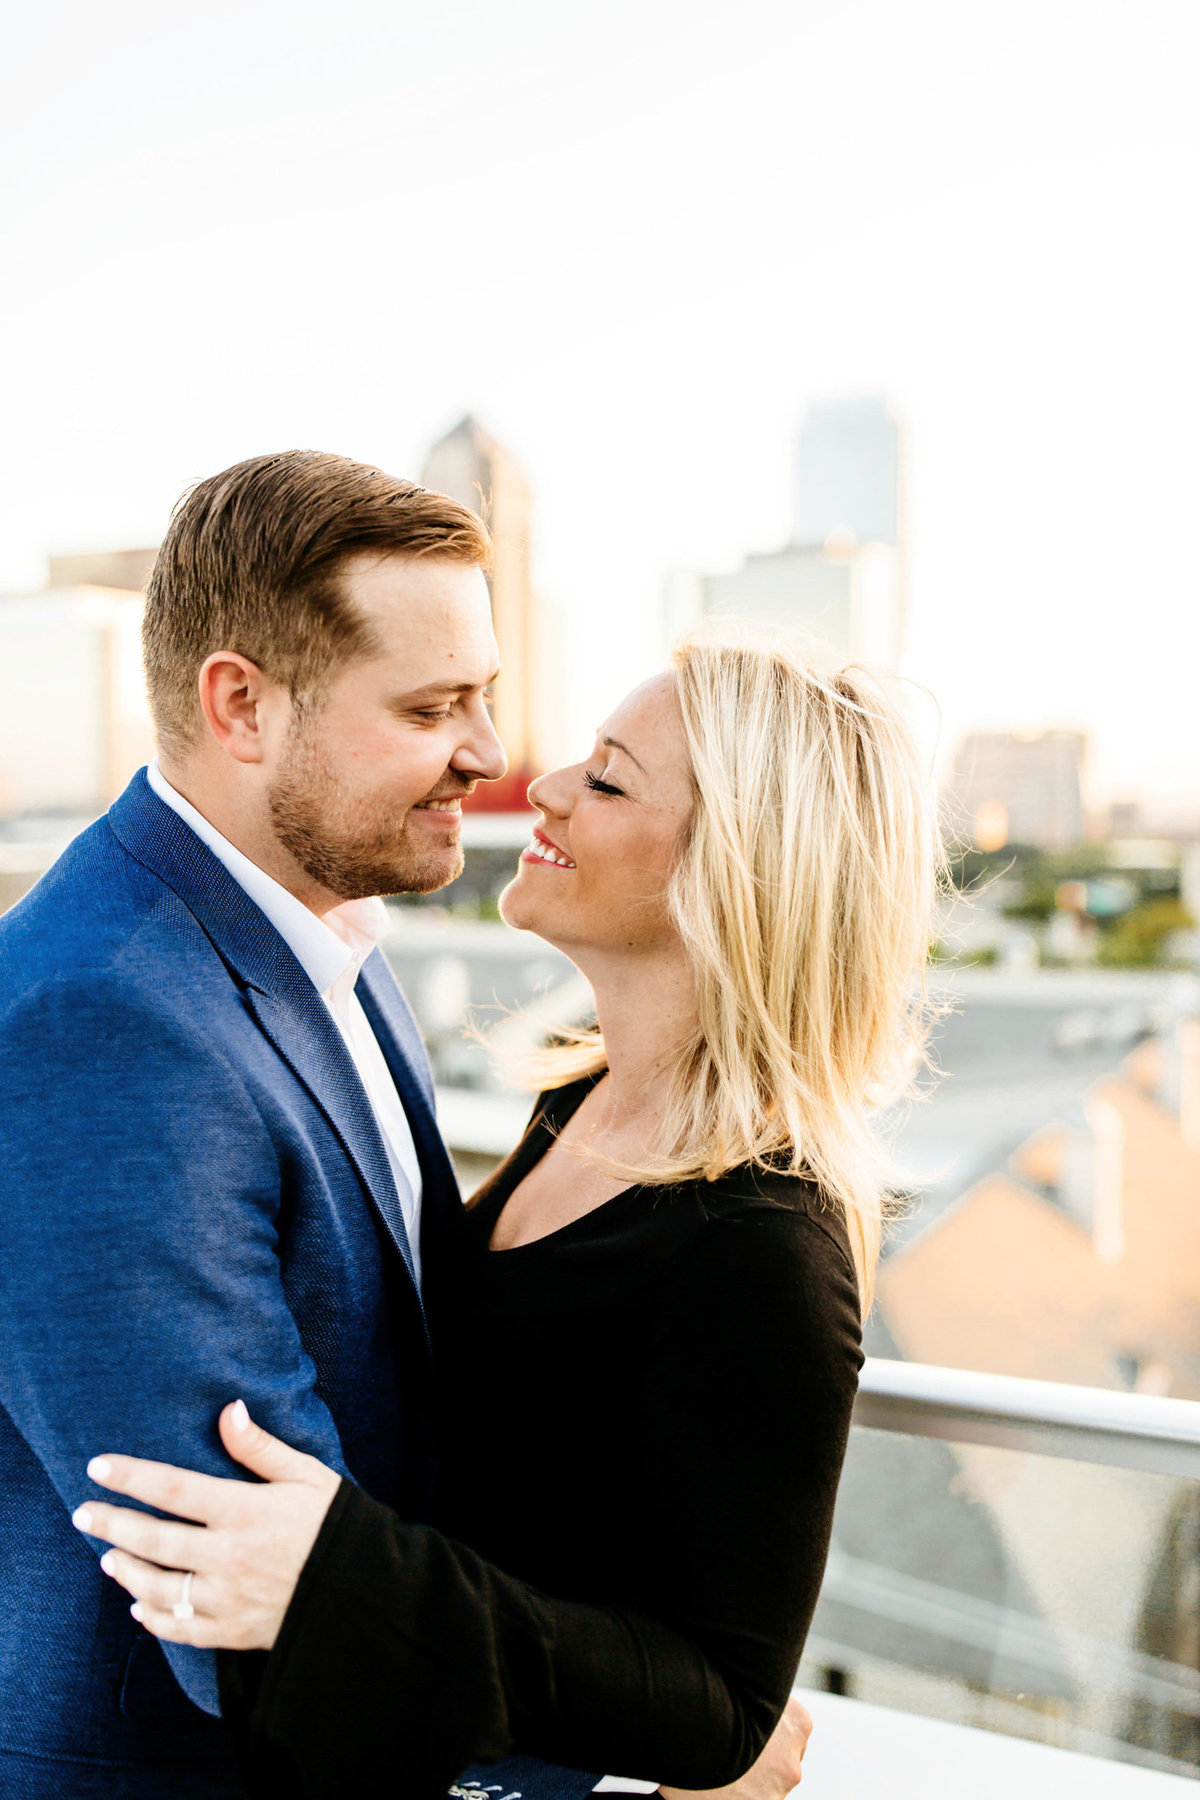 Eric & Megan - Downtown Dallas Rooftop Proposal & Engagement Session-99